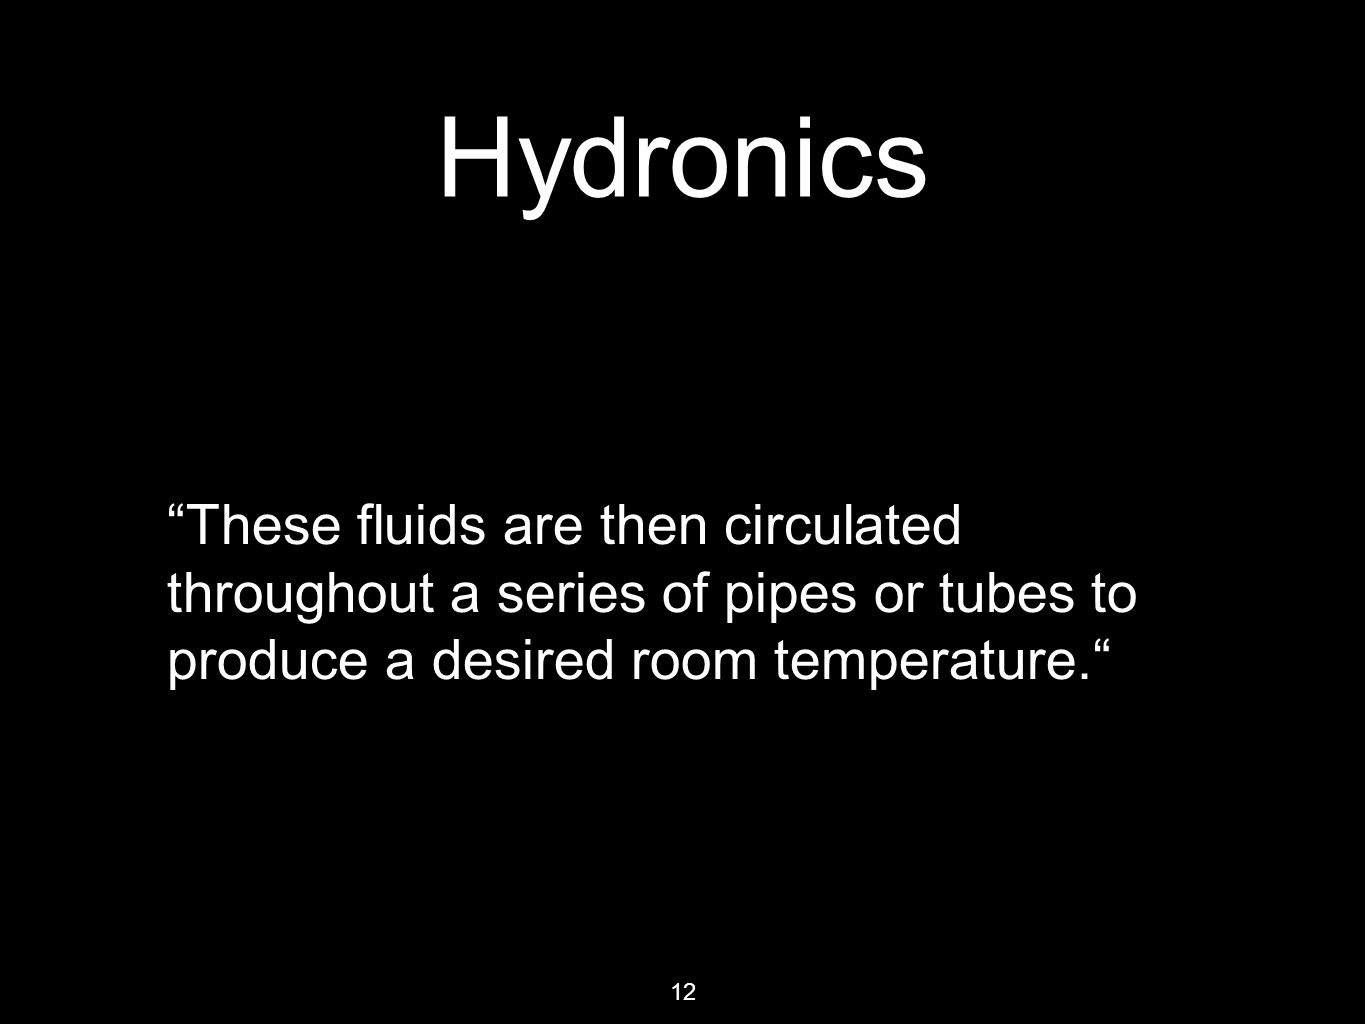 12 Hydronics These fluids are then circulated throughout a series of pipes or tubes to produce a desired room temperature.